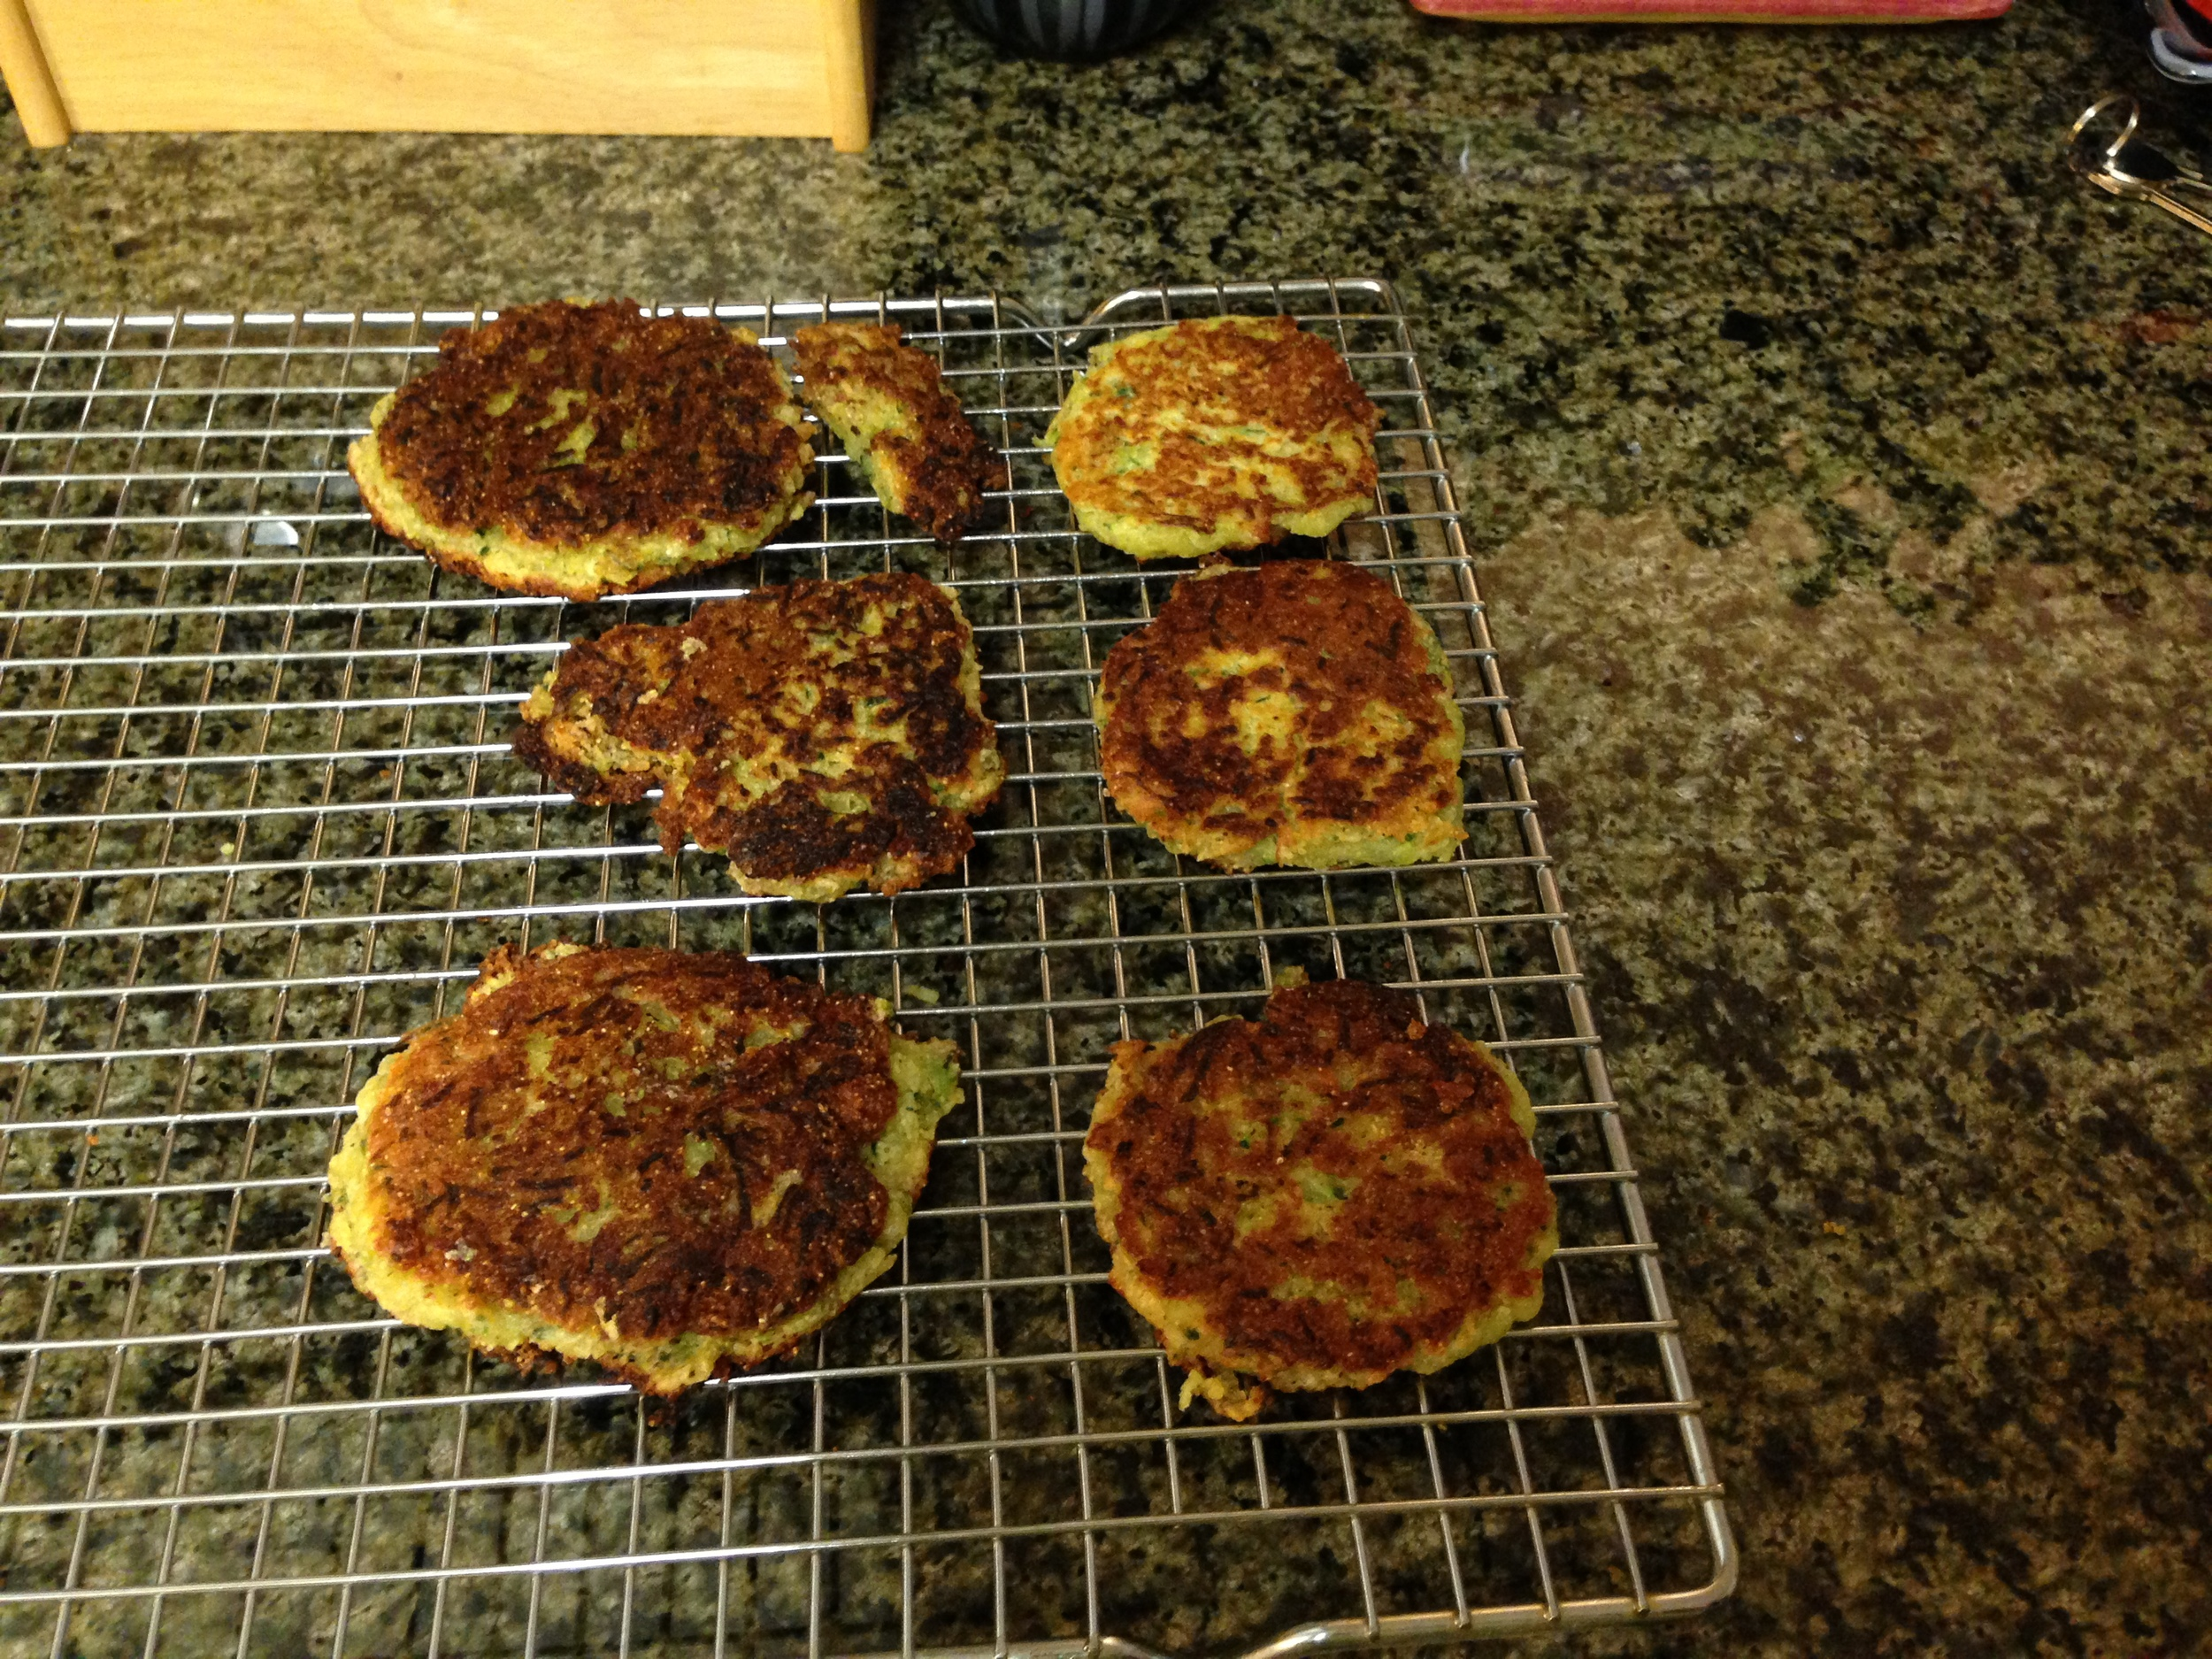 Eventually I was able to manage several, non-burned, pancakes. It didn't make a lot but it was a yummy side dish.